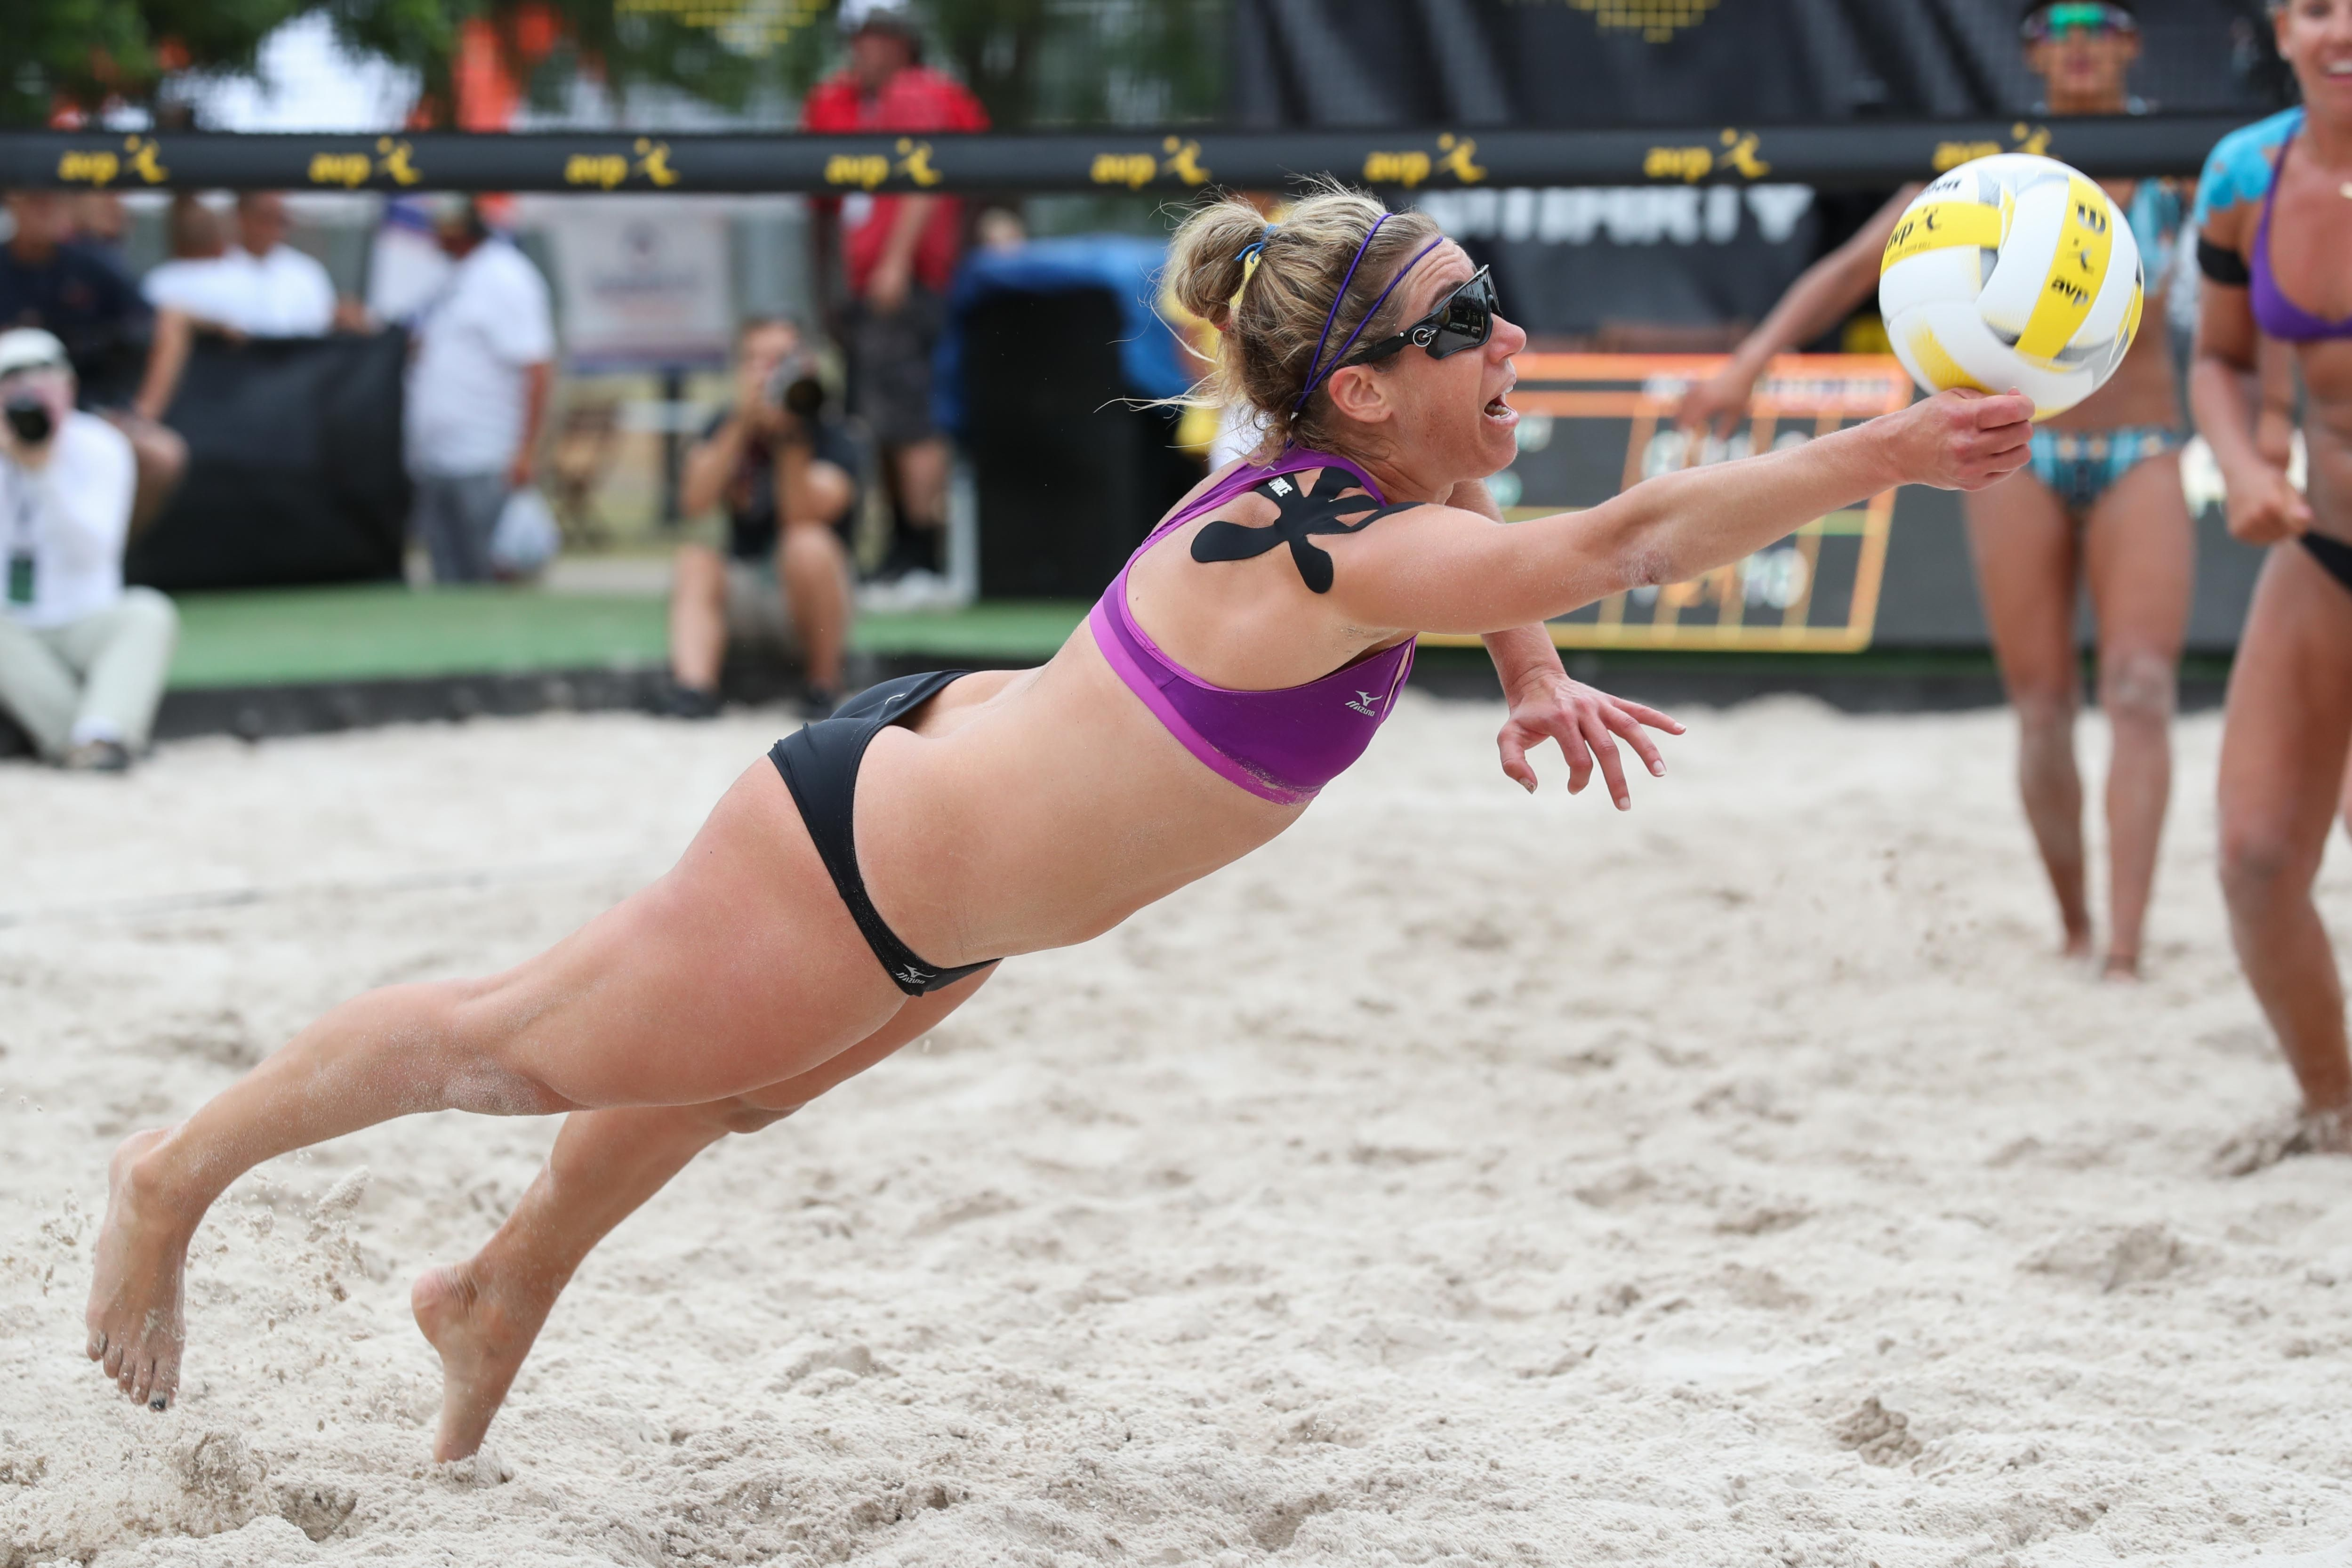 Avp Austin Open 2017 Photo Gallery Avp Beach Volleyball Female Volleyball Players Beach Volleyball Women Volleyball